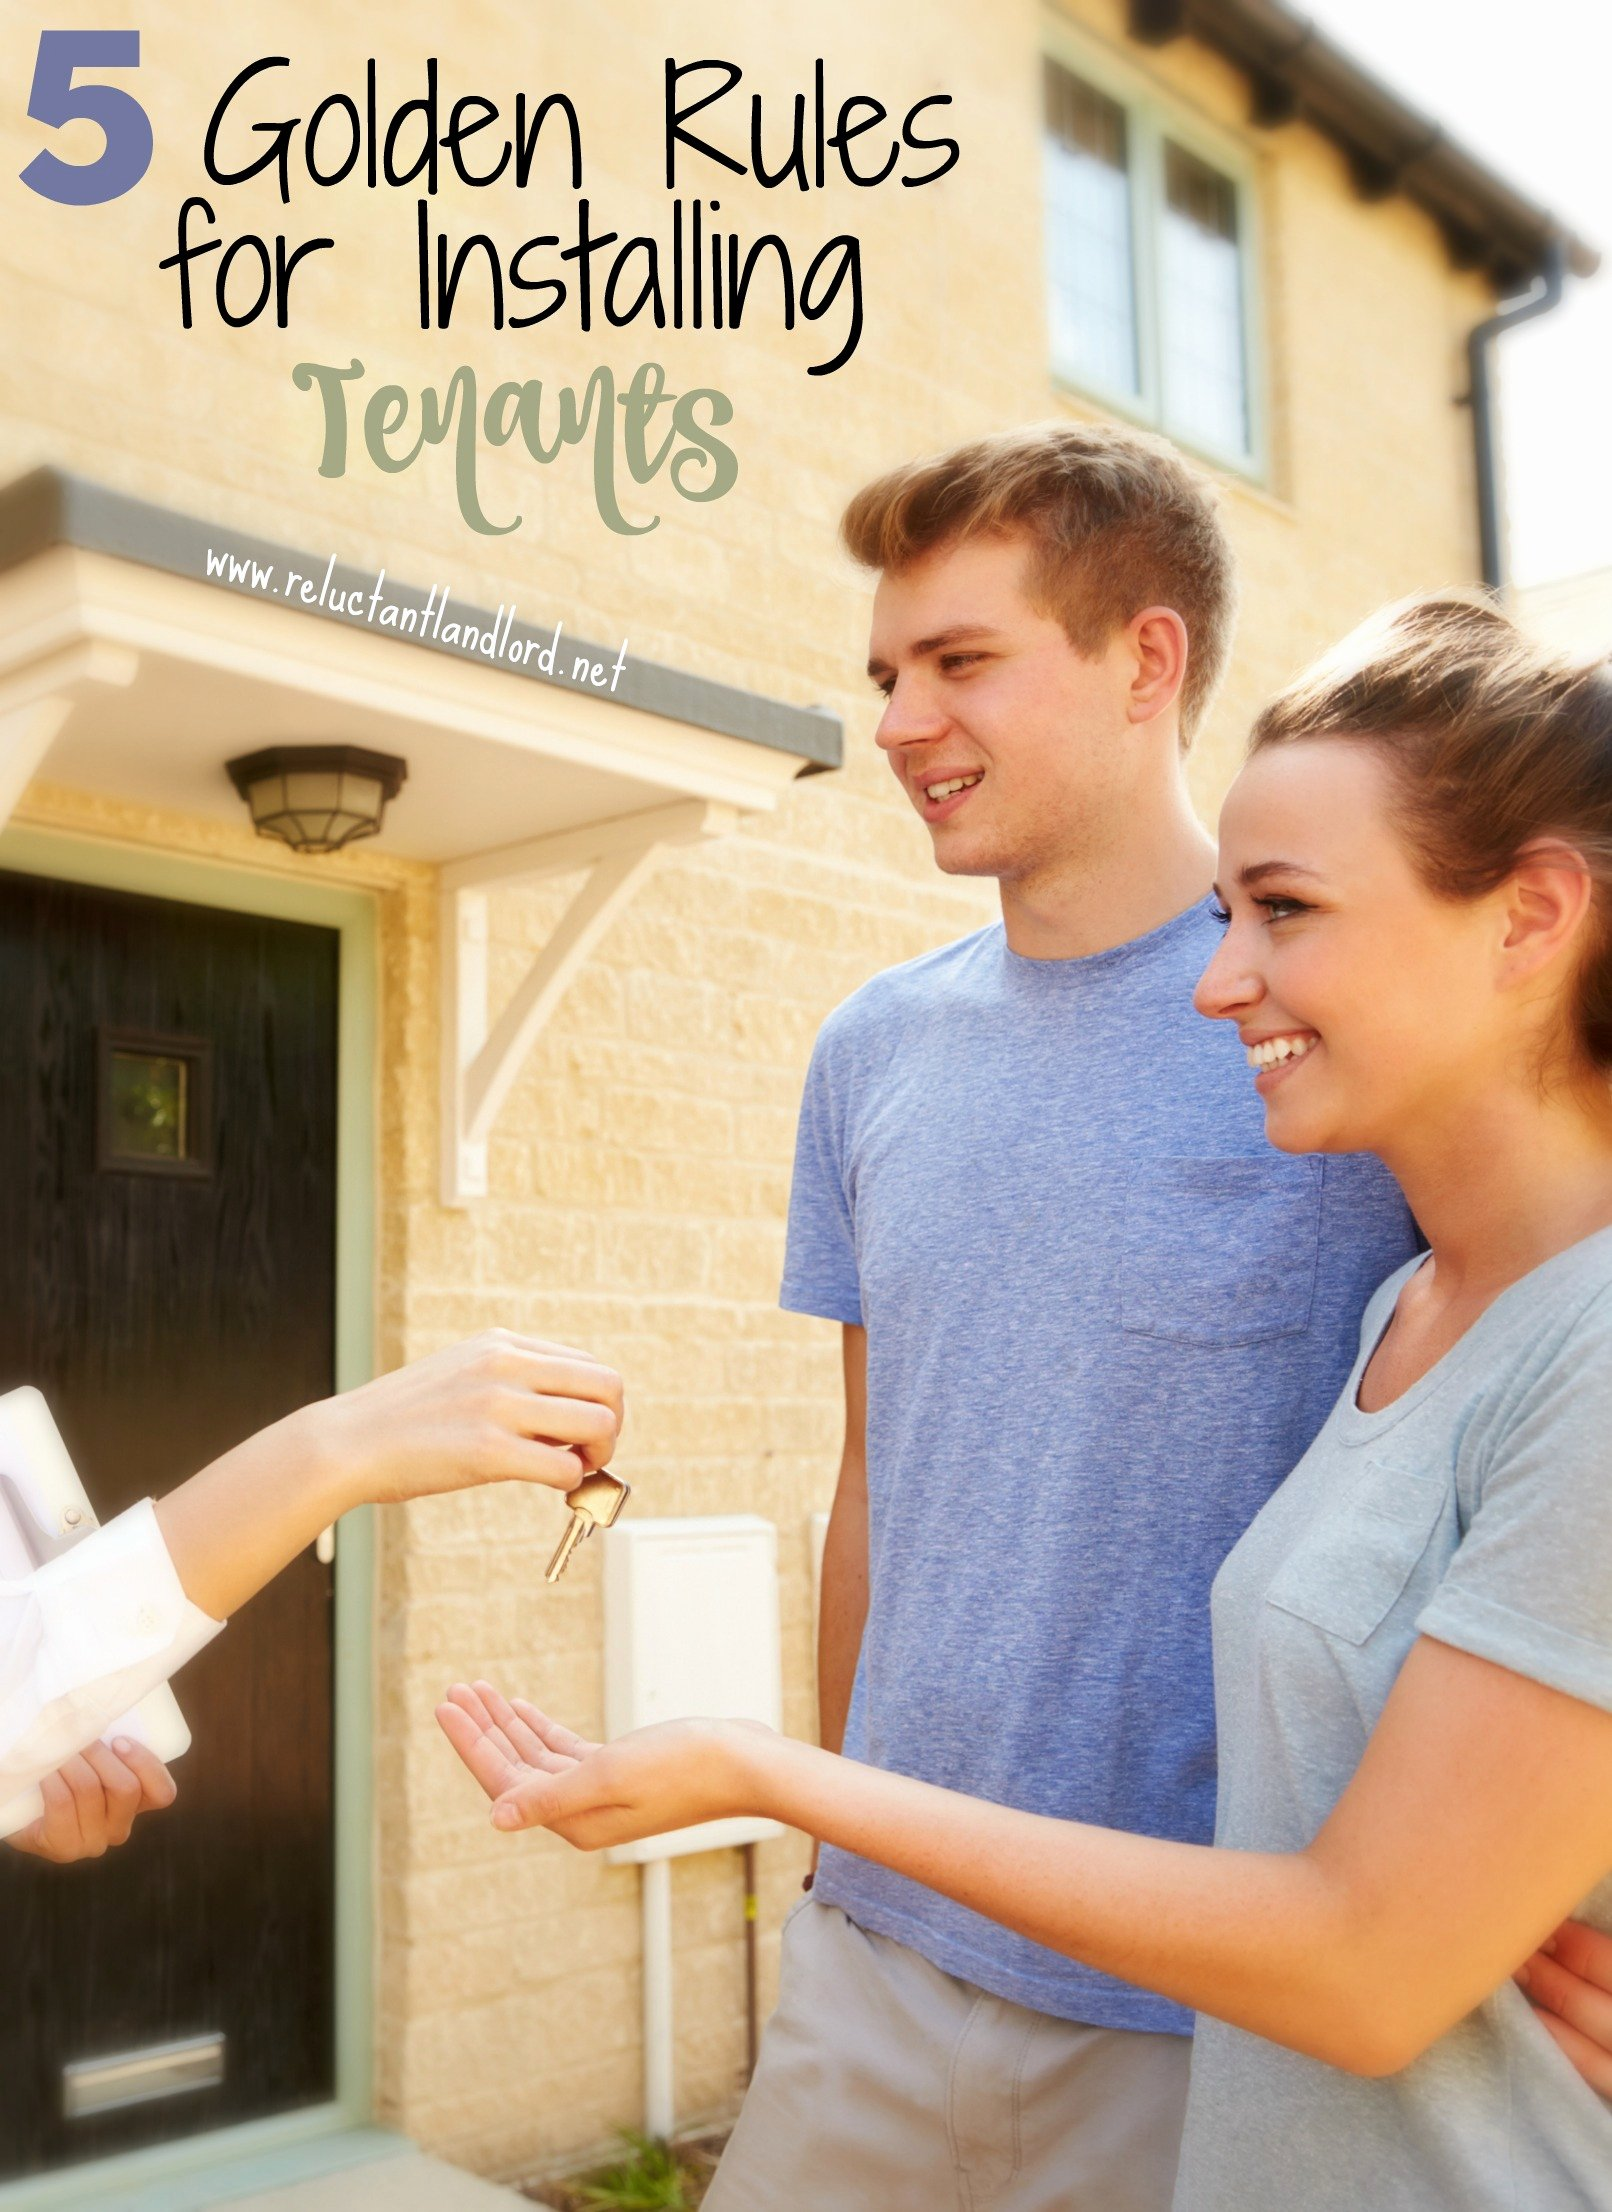 House Rules for Tenants Elegant 5 Golden Rules for Installing Tenants the Reluctant Landlord